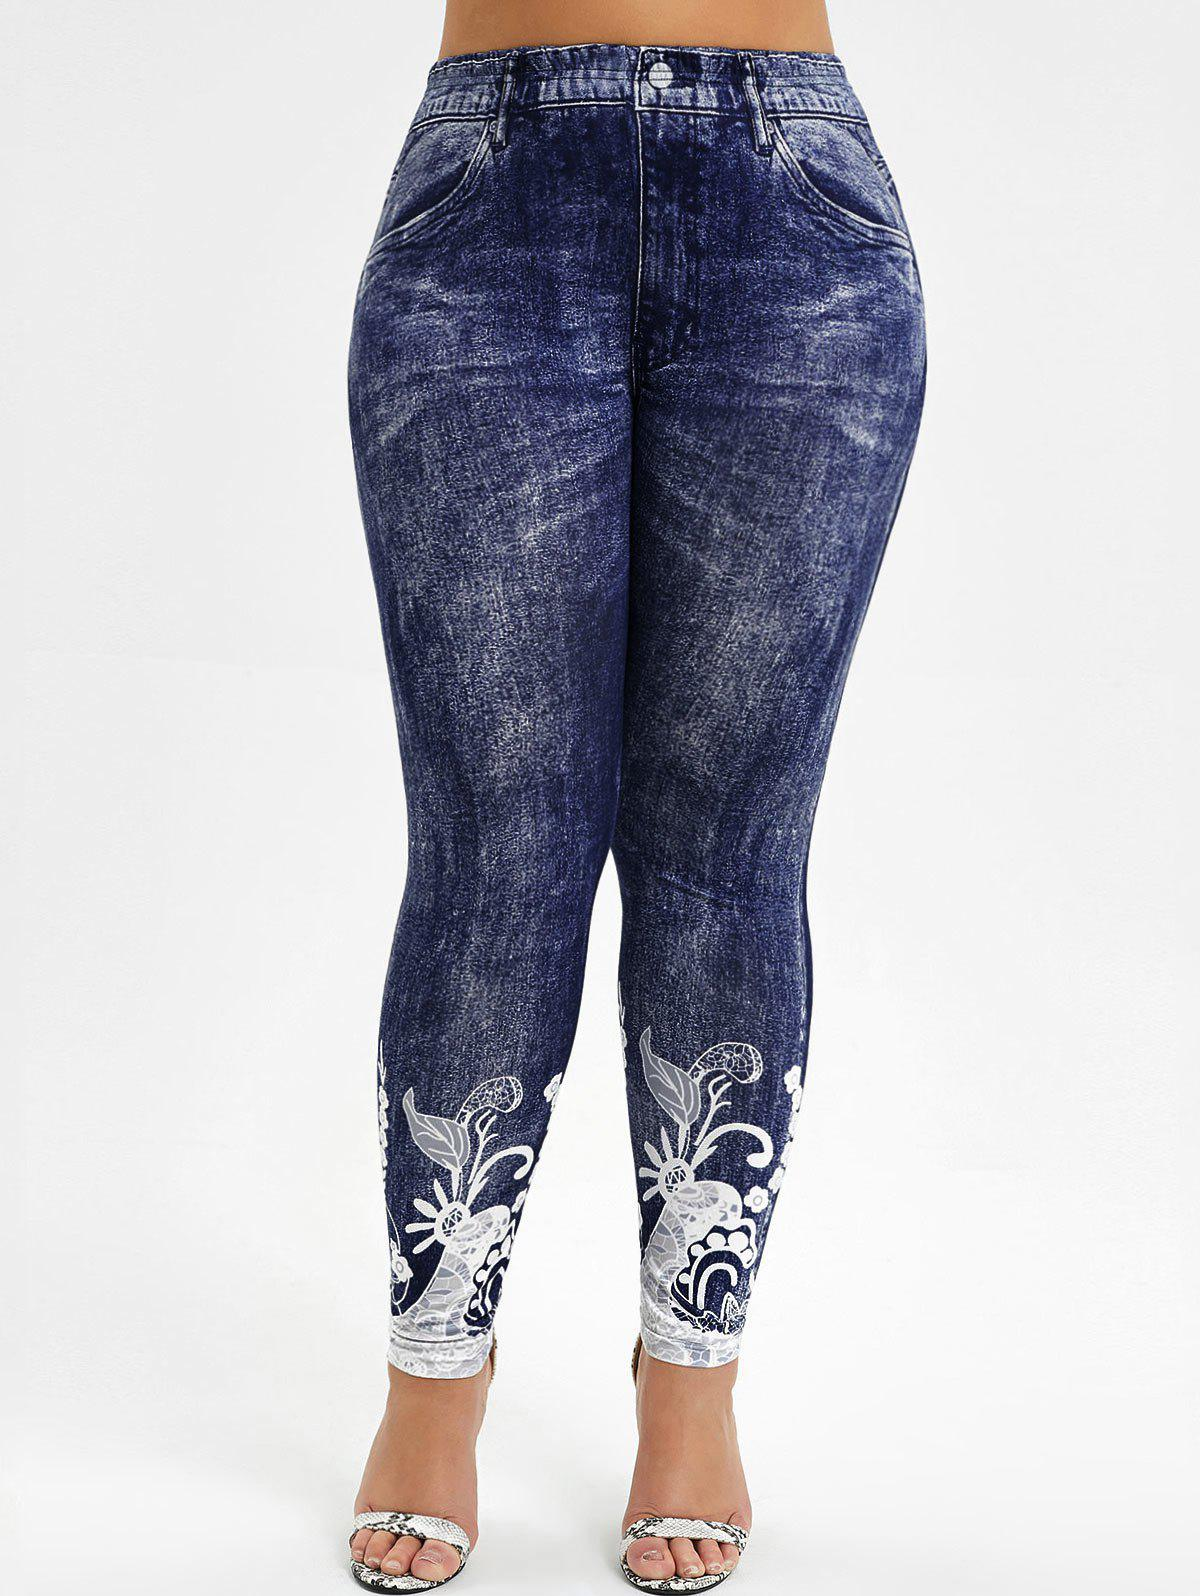 Chic High Waisted 3D Printed Plus Size Jeggings